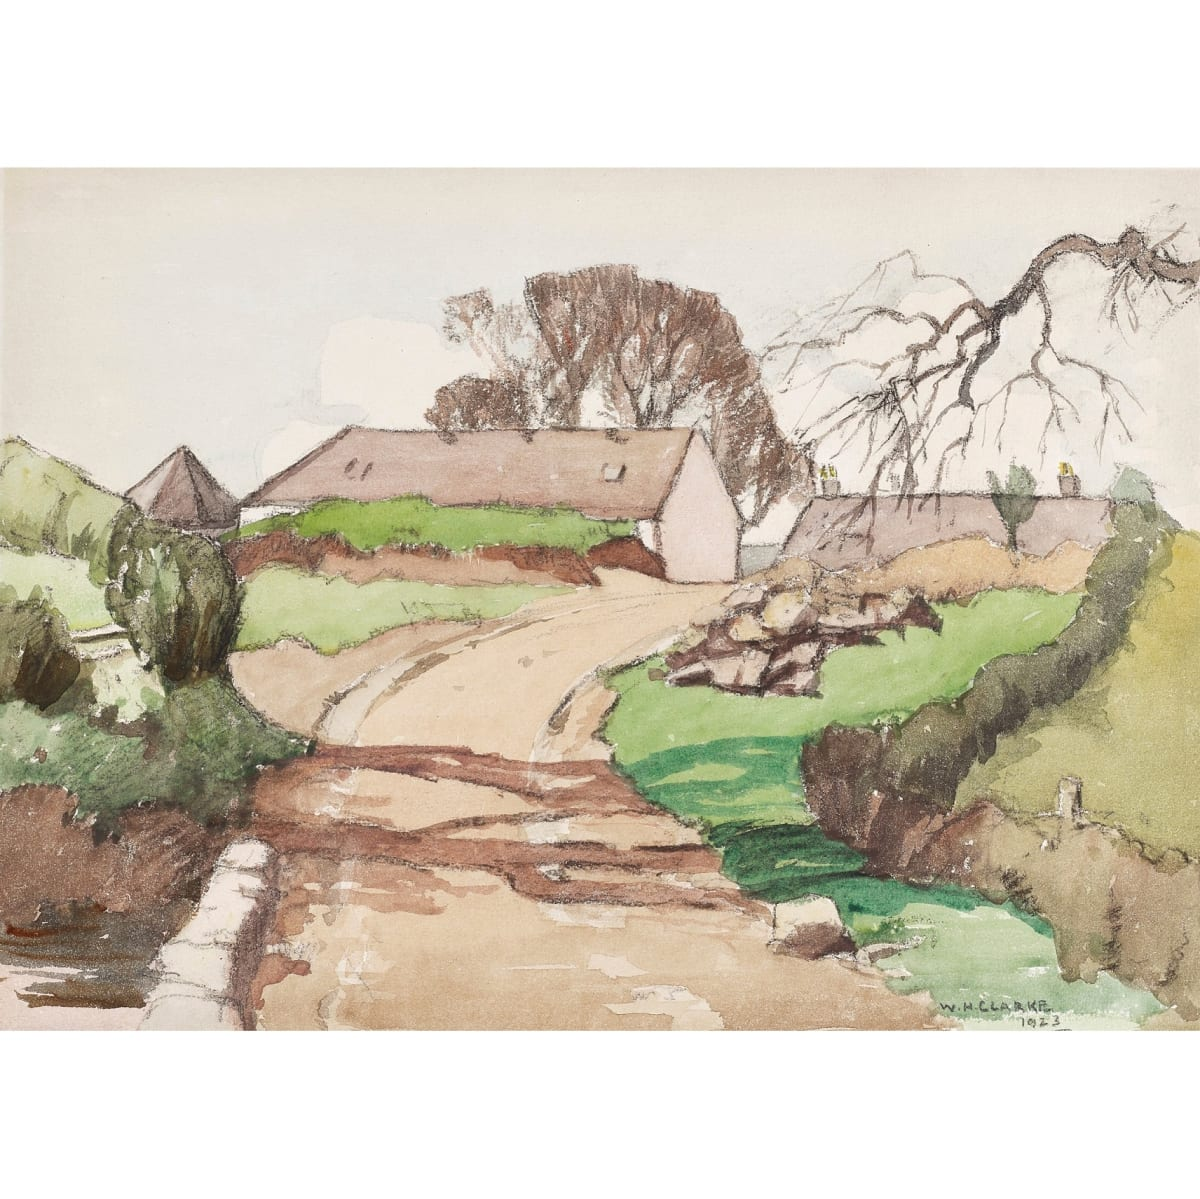 William Hanna Clarke A Galloway Farm, 1923 signed and dated 1923 watercolour 10 1/2 x 14 1/2 inches